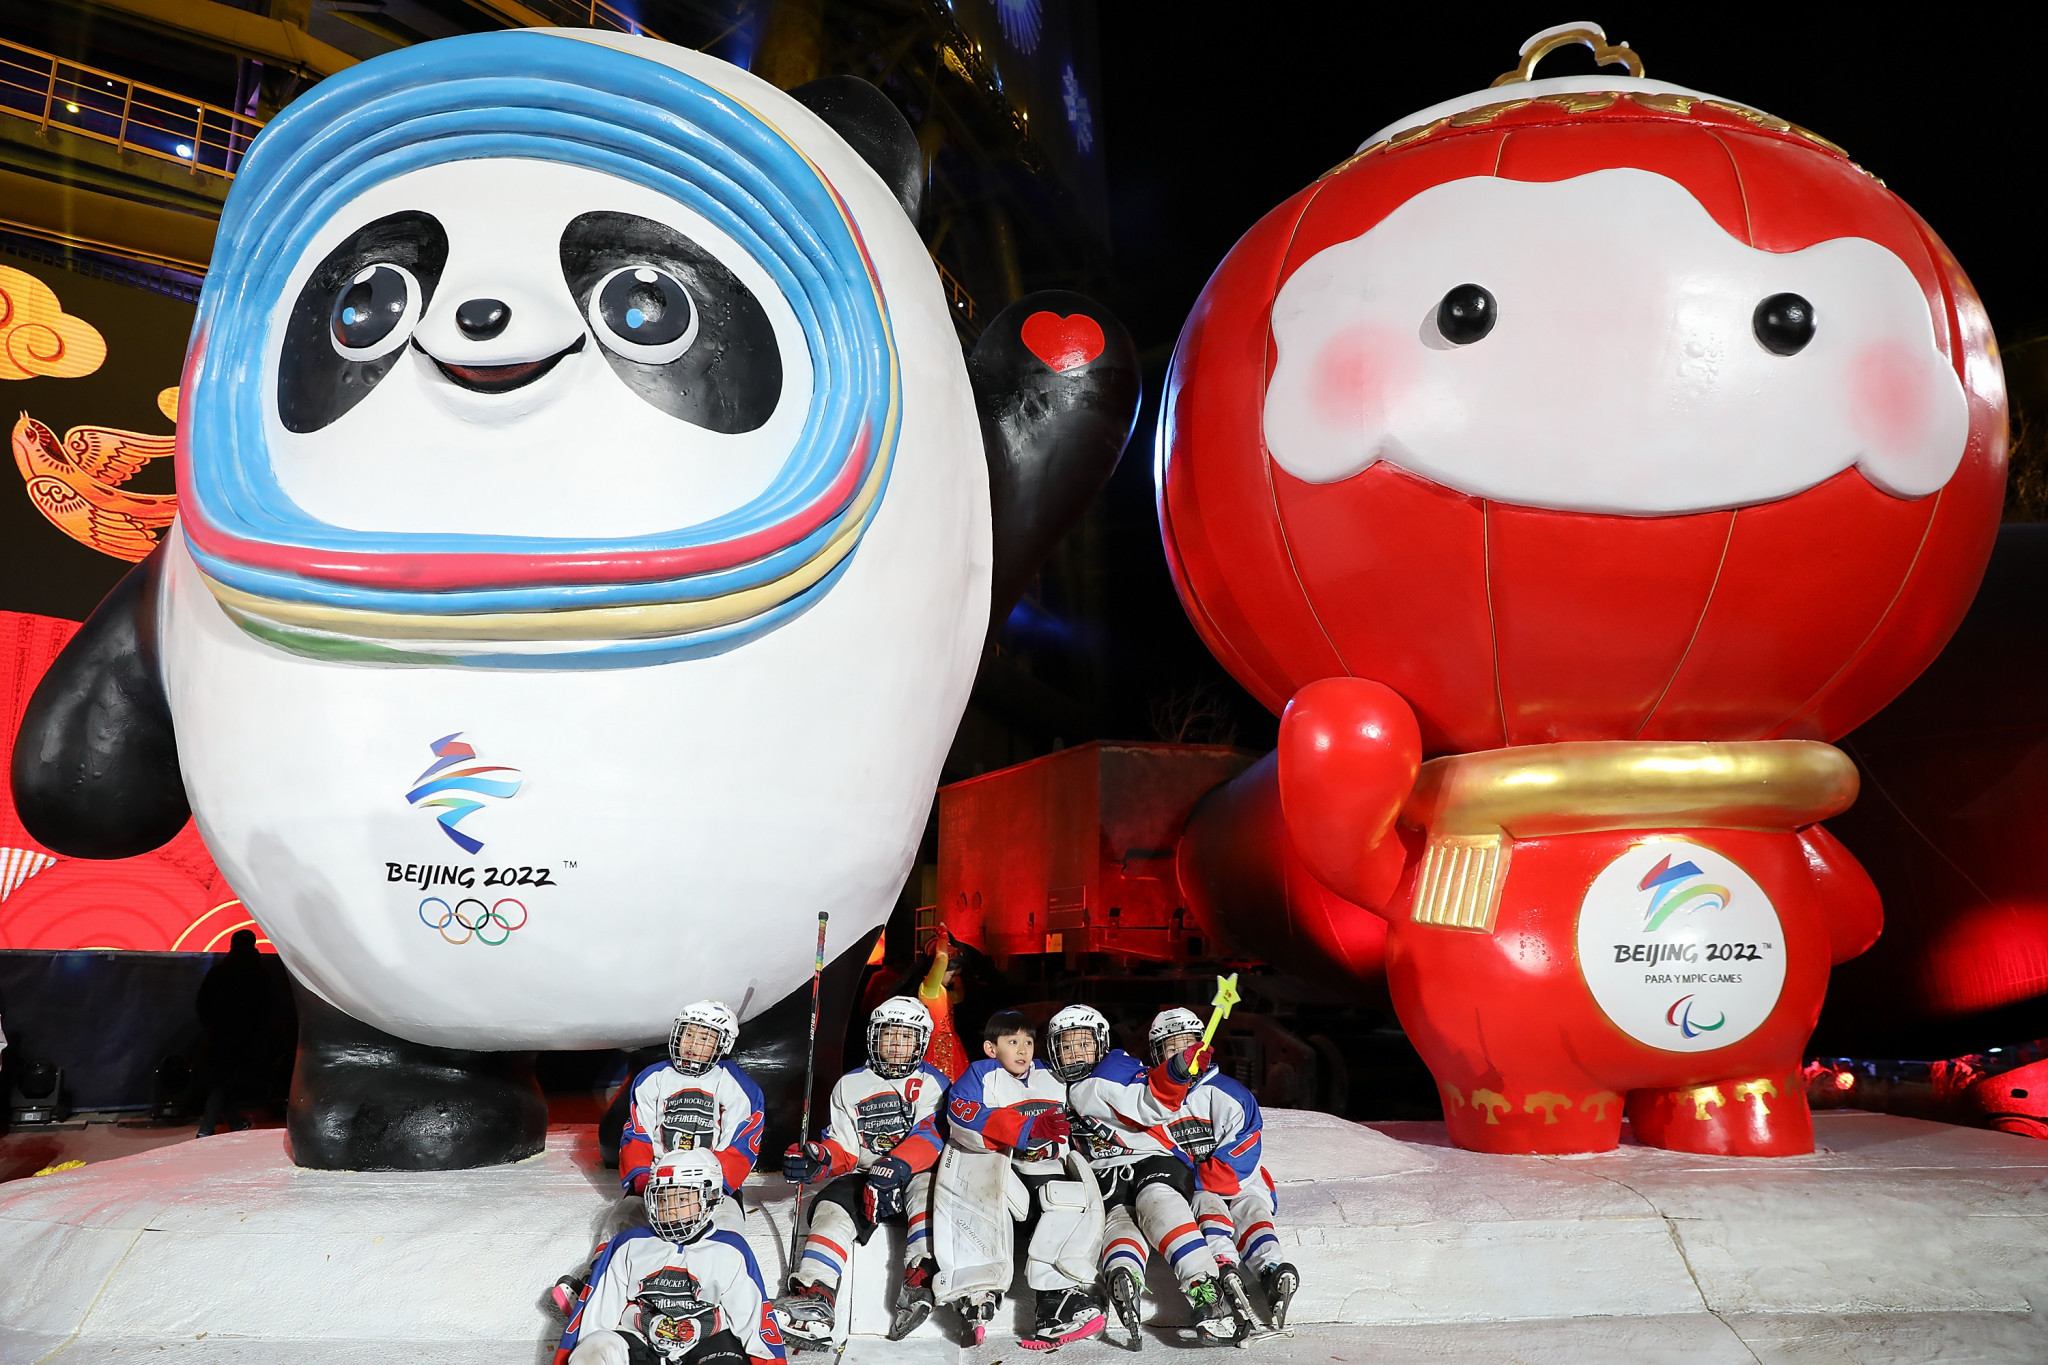 The build-up to Beijing 2022 looks increasingly political ©Getty Images